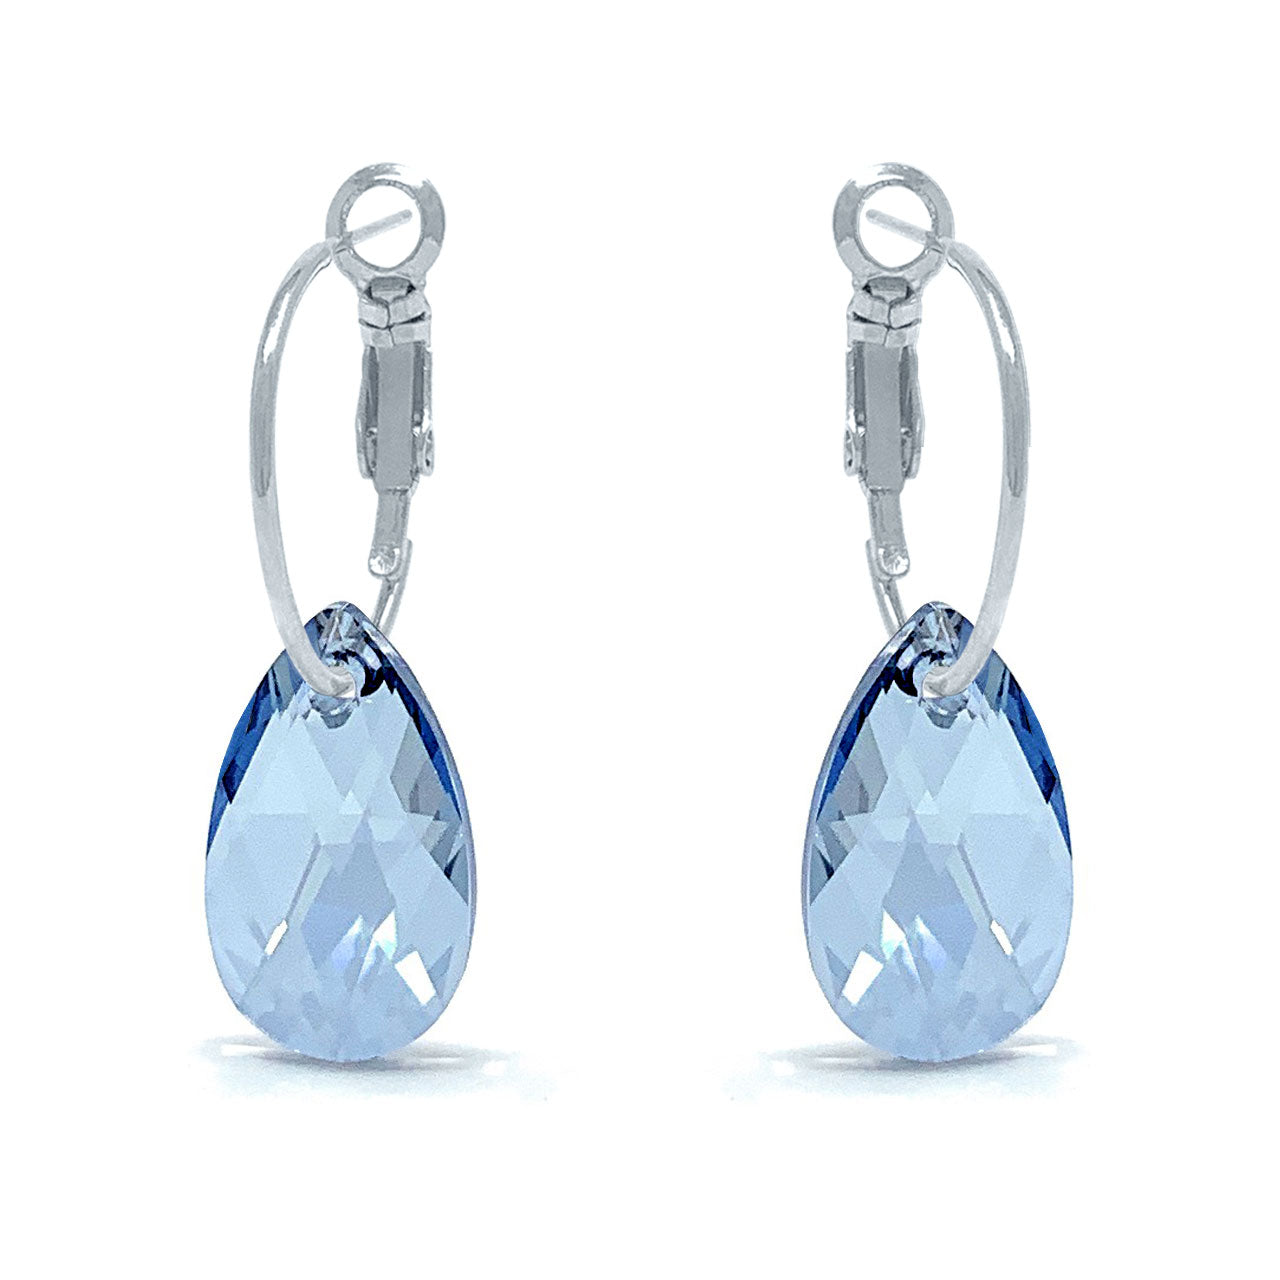 Aurora Small Drop Earrings with Grey Blue Shade Pear Crystals from Swarovski Silver Toned Rhodium Plated - Ed Heart